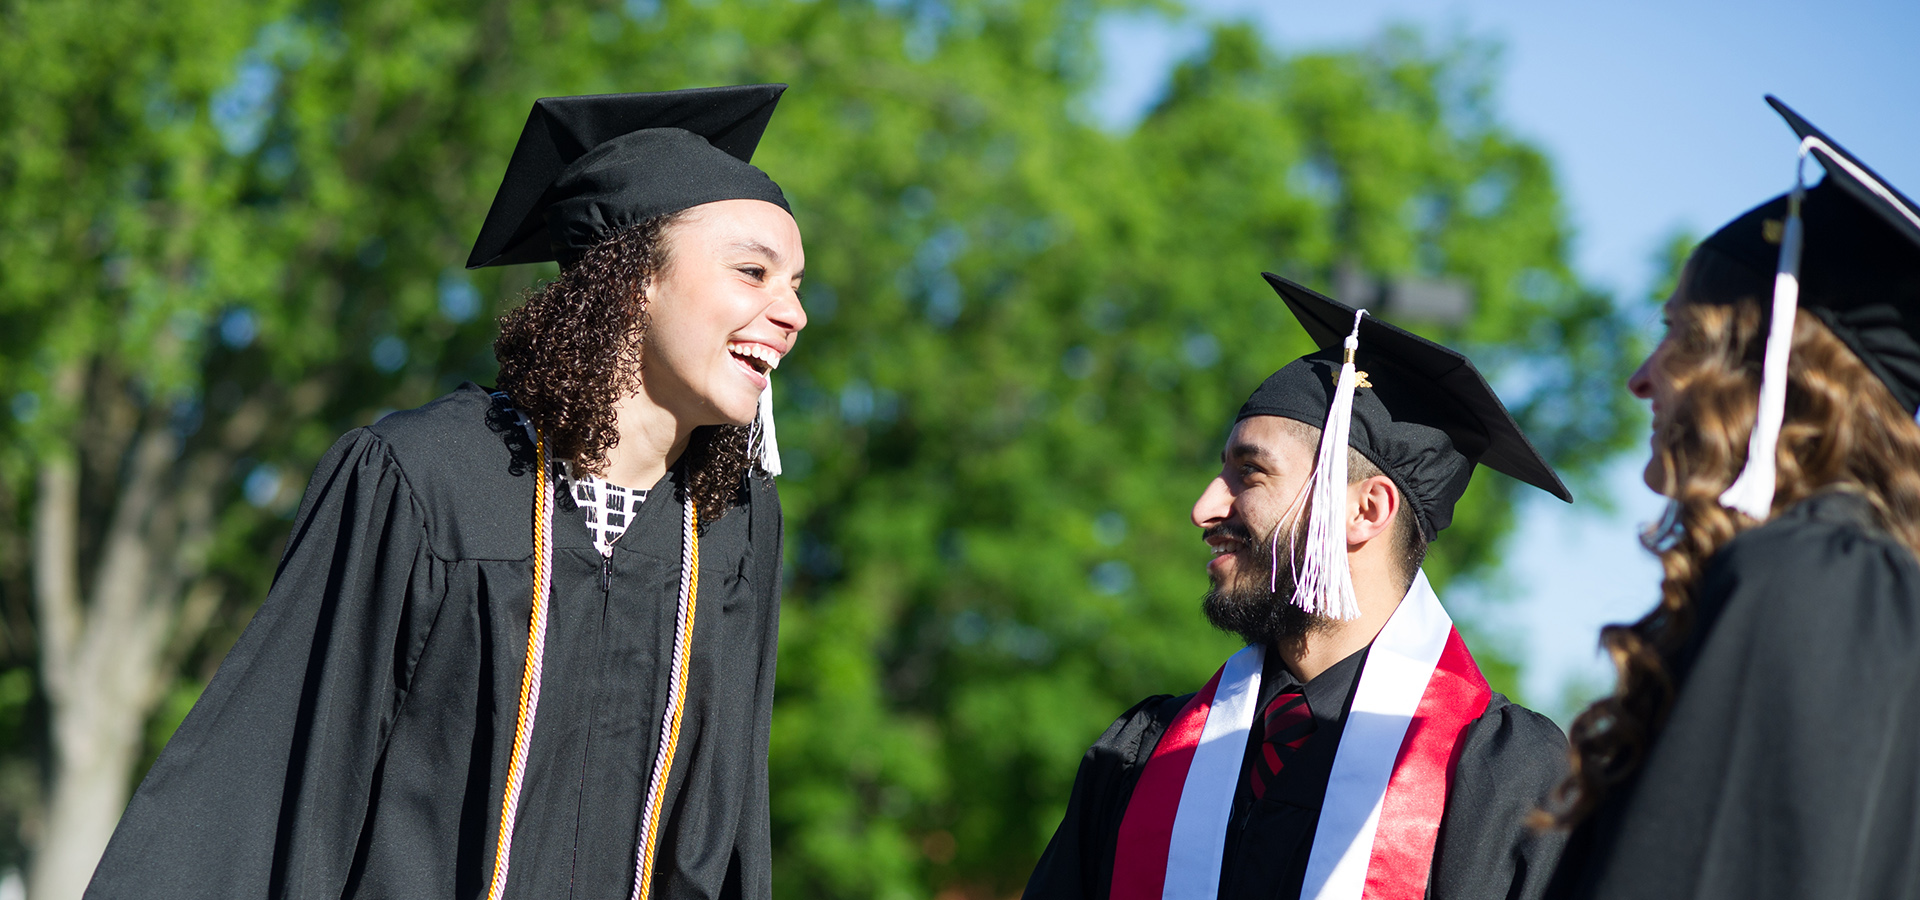 Northwestern graduates get great jobs – and lead faithful, courageous lives for Christ.